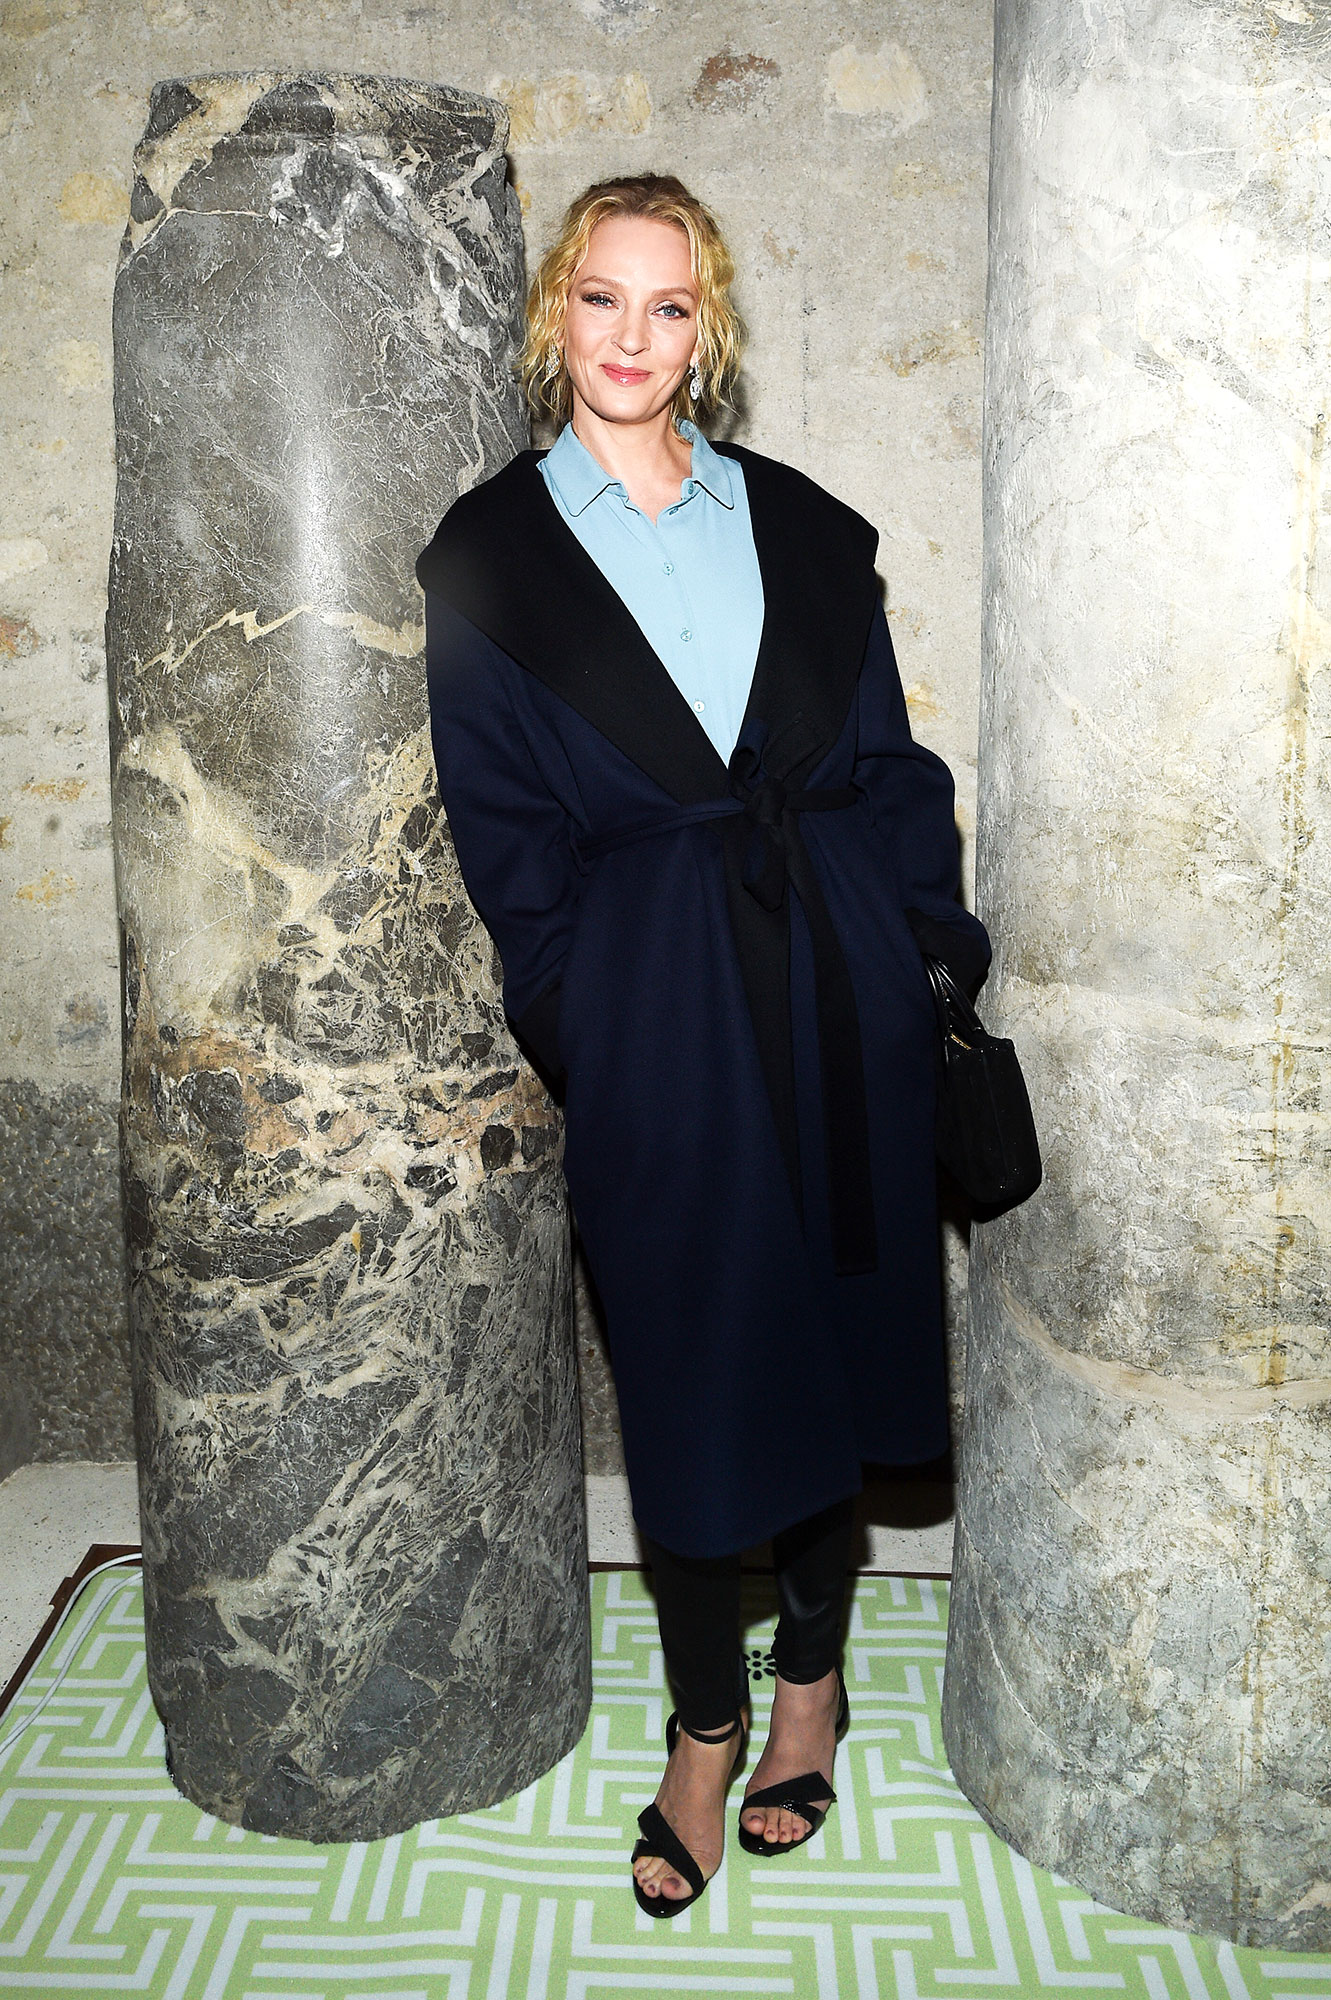 Uma Thurman See the Stars' Street Style at Paris Fashion Week - The Academy Award-winner offered a masterclass in transitional dressing at Lanvin on Wednesday, February 27, in her navy and black wrap-coat and strappy sandals.